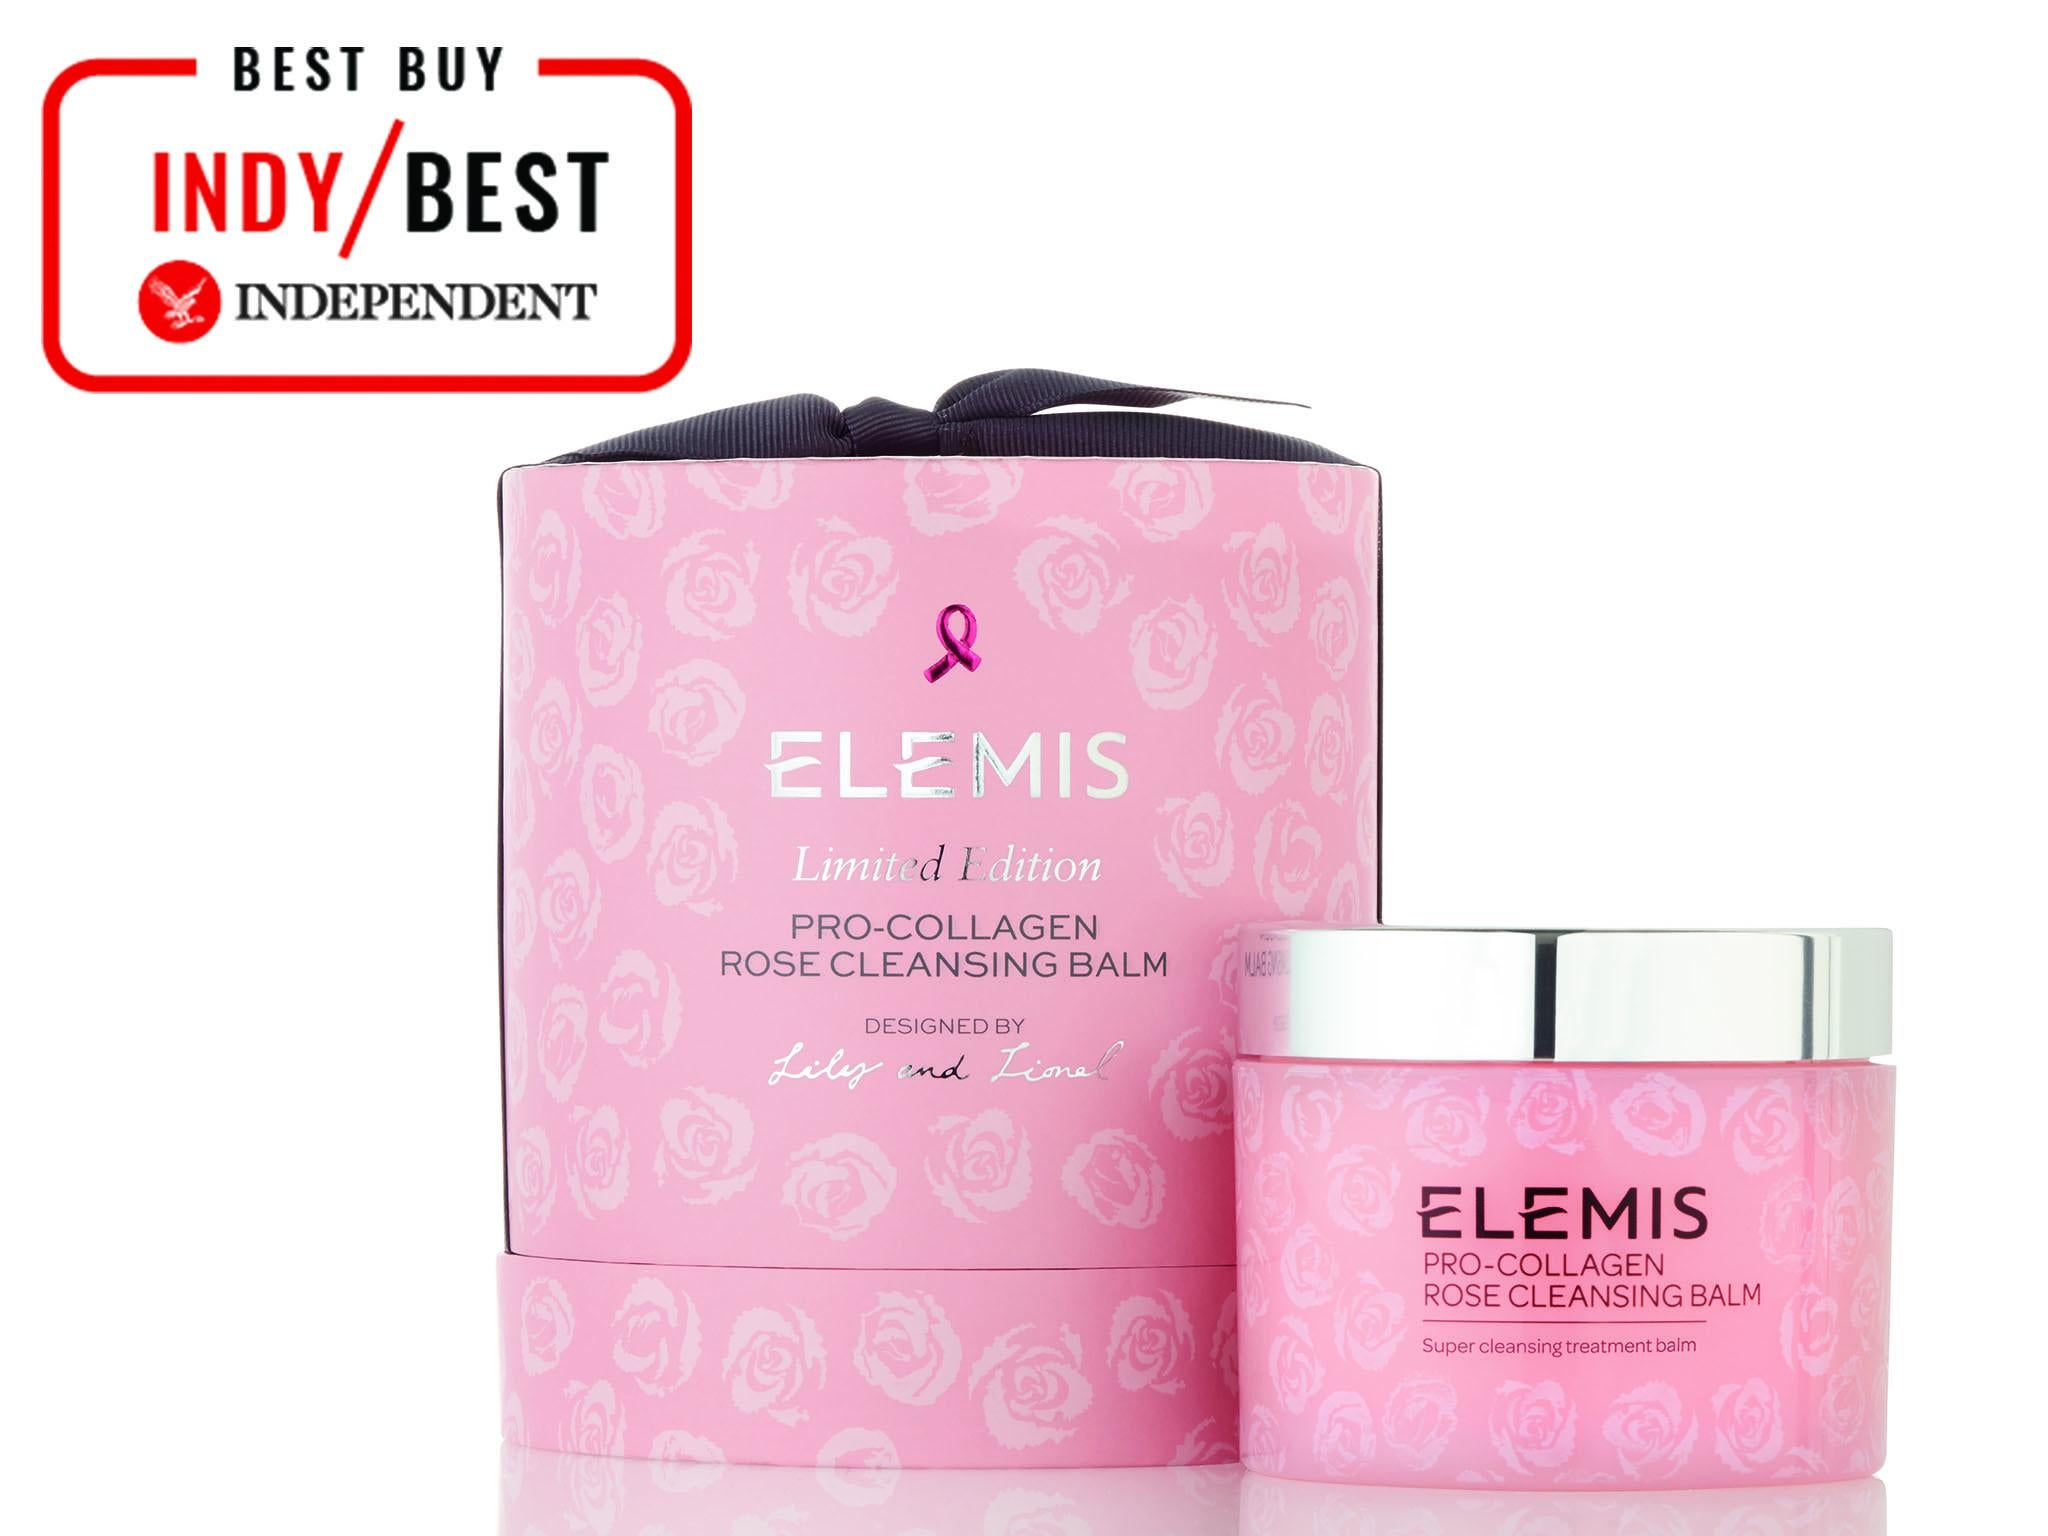 Breast Cancer Awareness Month 2018 12 Best Beauty Buys The